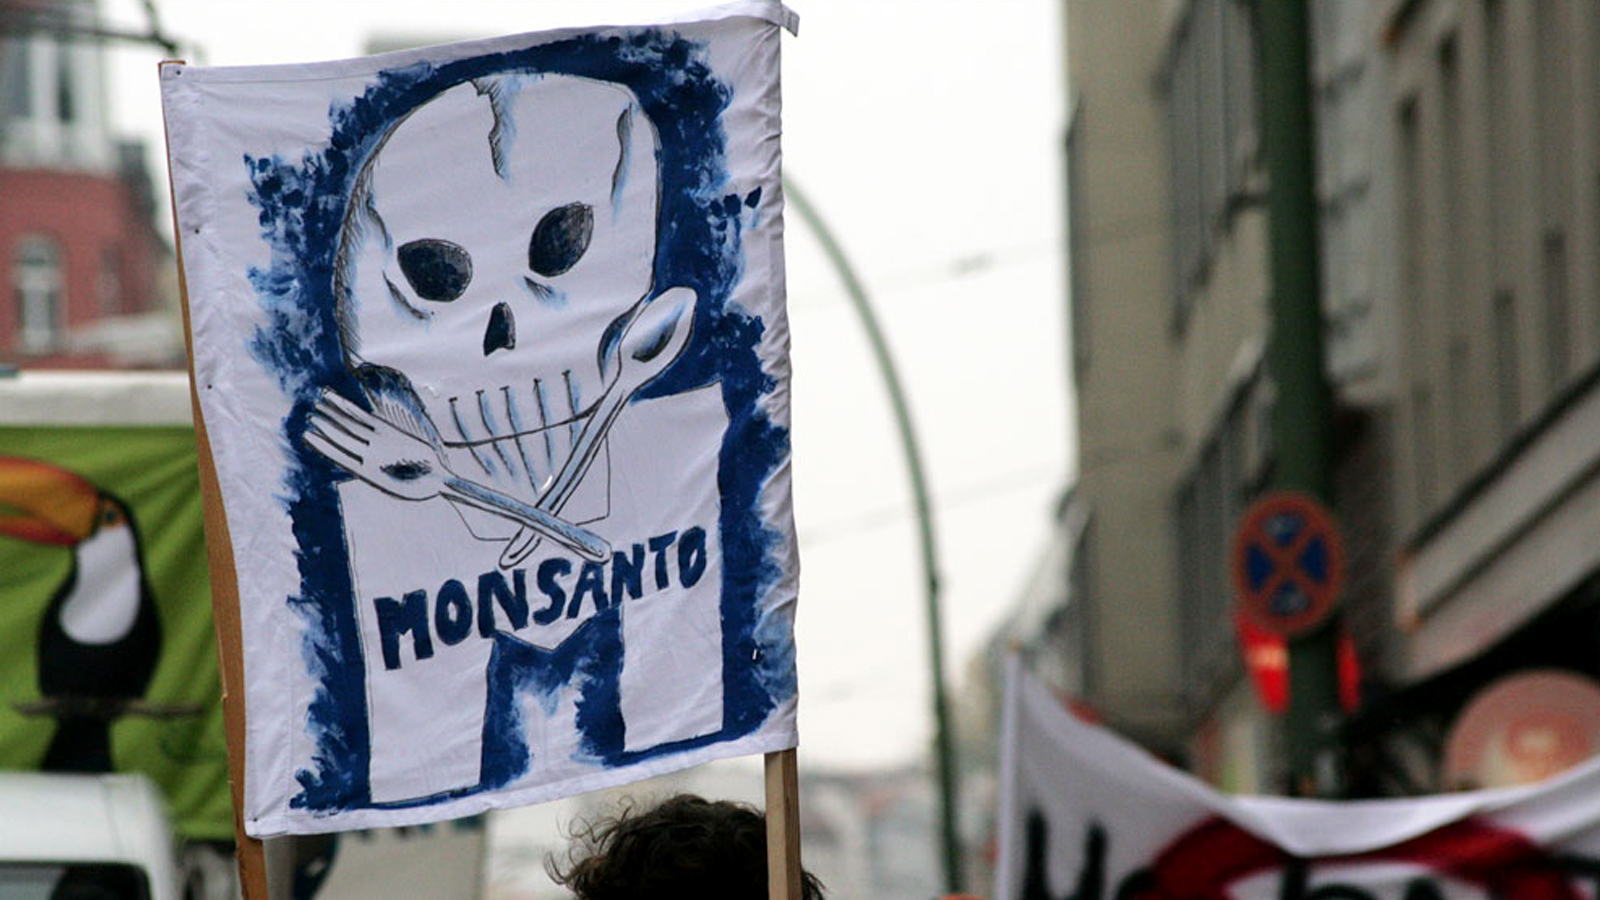 Monsanto protest sign